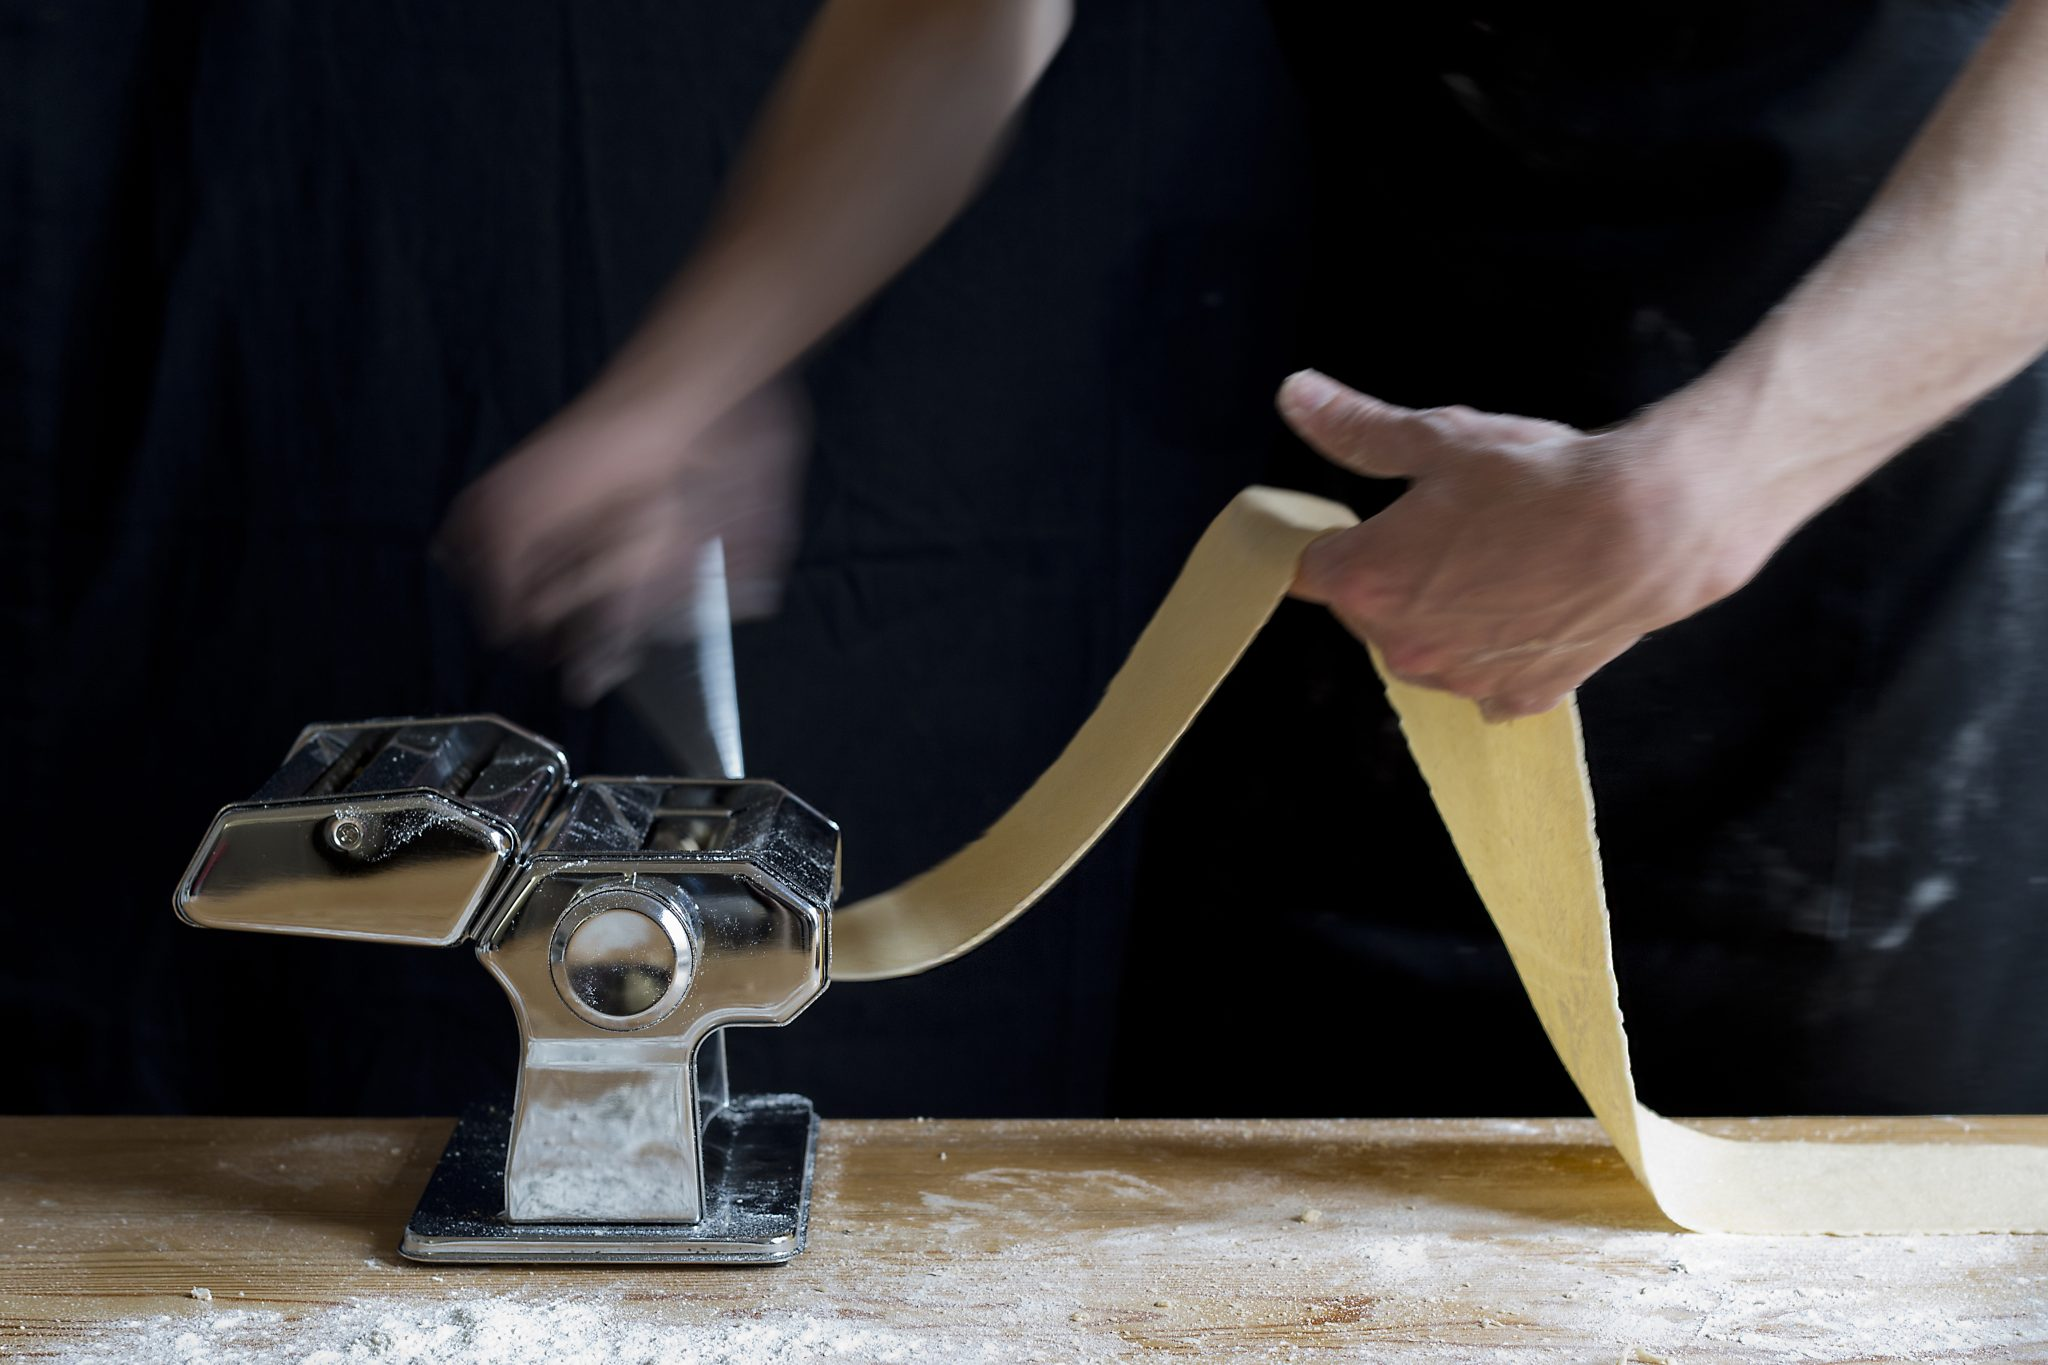 Food photography, making pasta, past machine